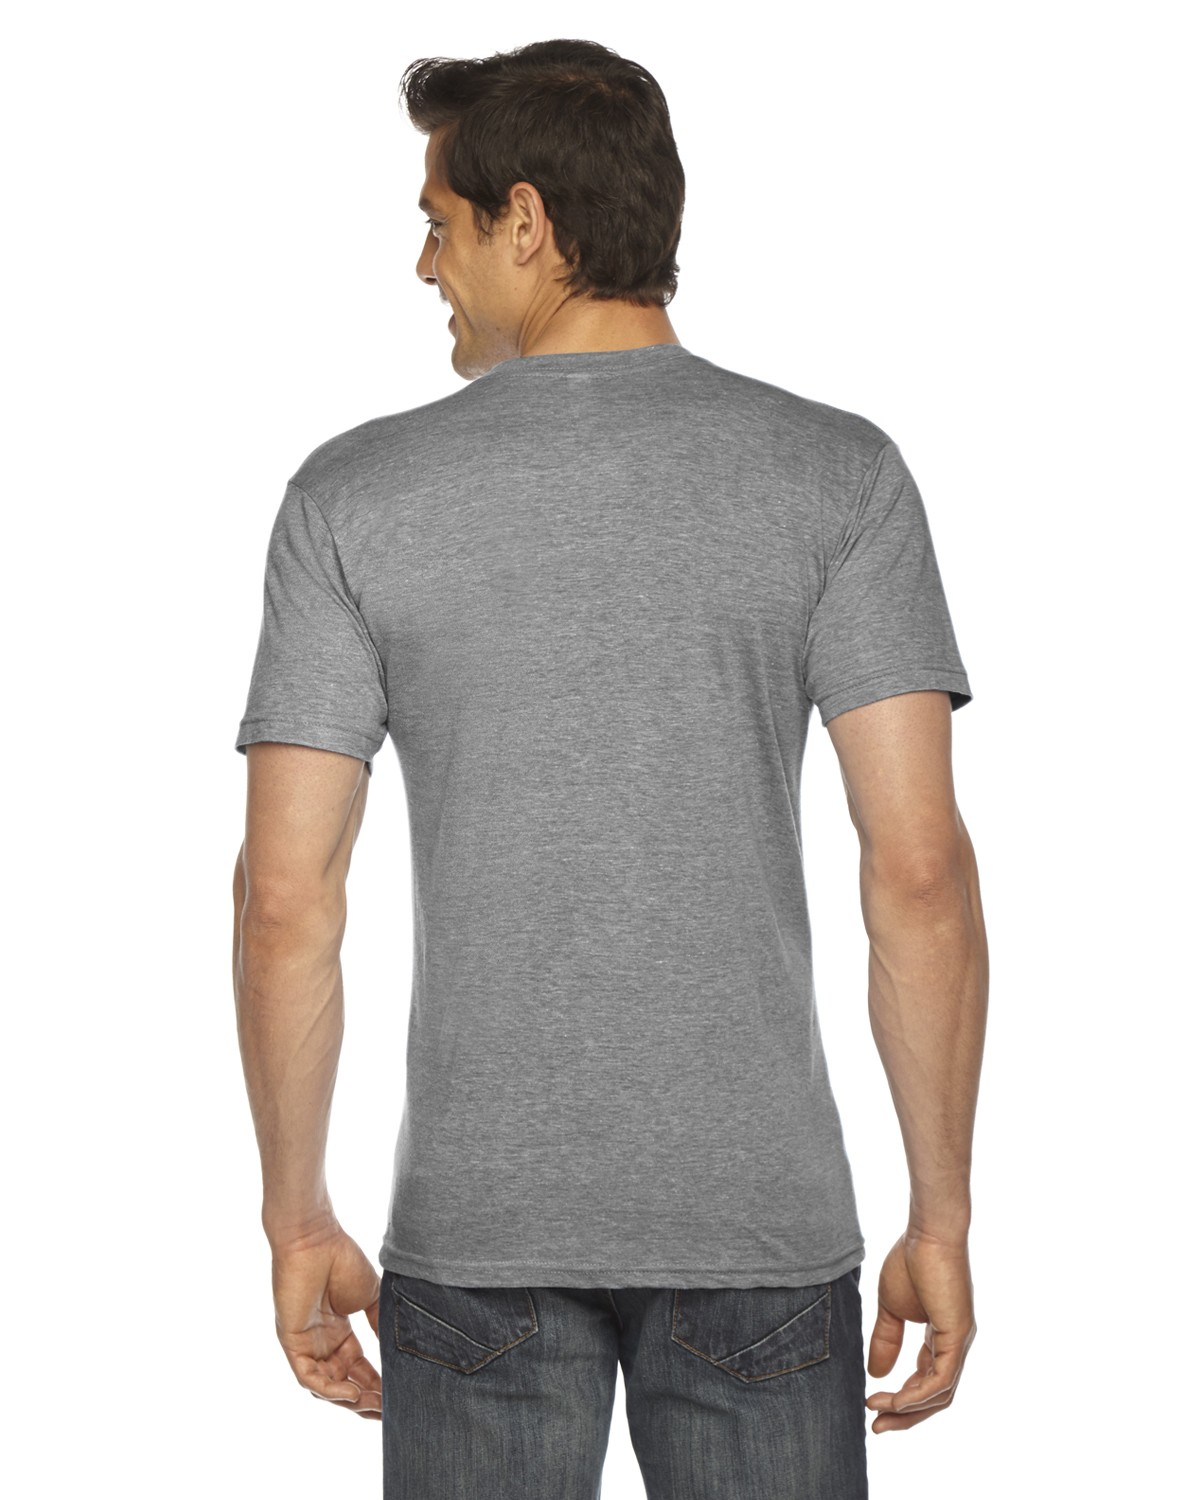 TR461W American Apparel ATHLETIC GREY